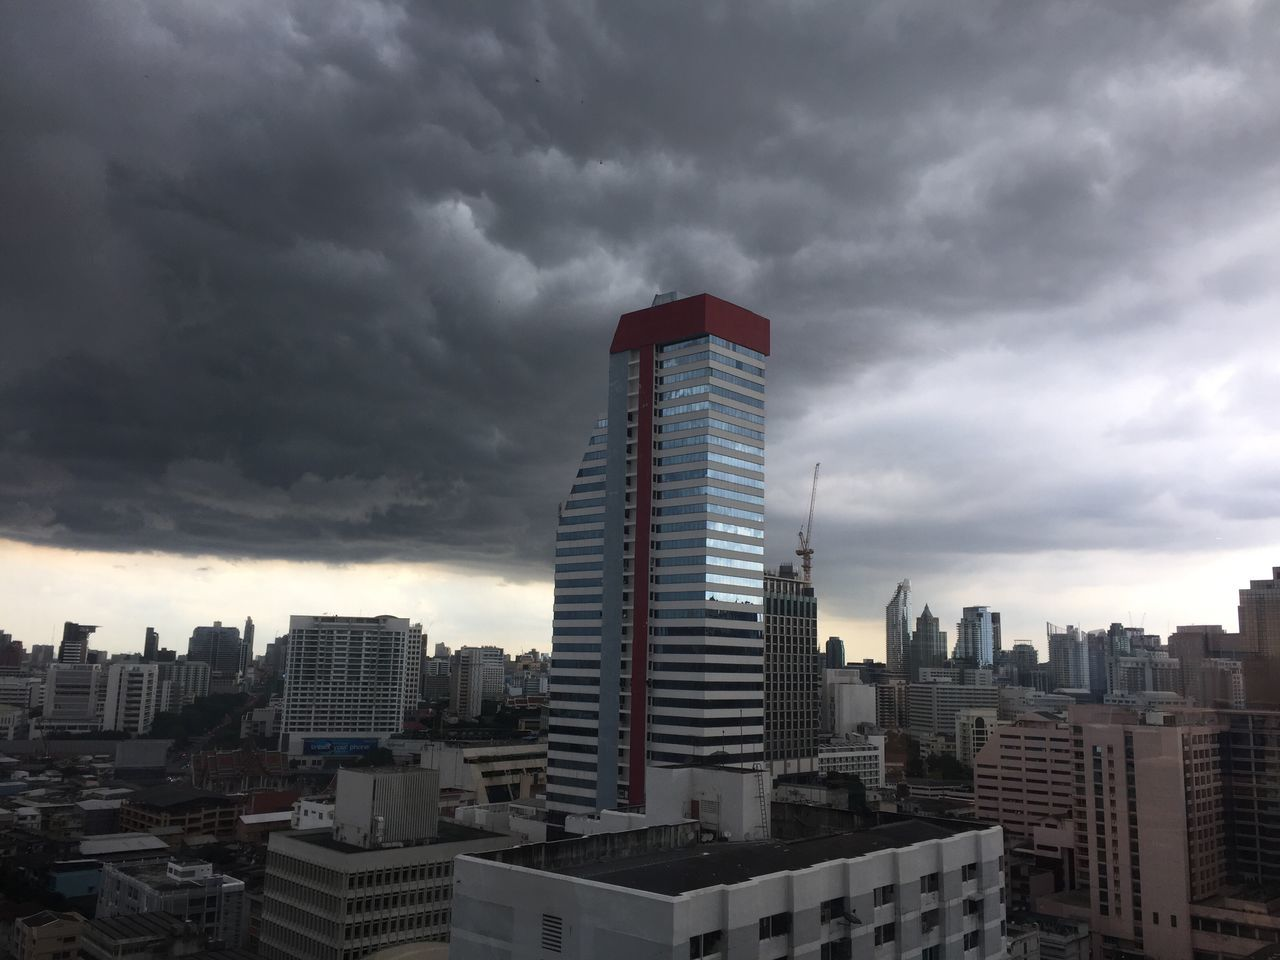 skyscraper, architecture, building exterior, cityscape, city, cloud - sky, built structure, tall - high, modern, sky, tower, urban skyline, no people, outdoors, day, travel destinations, storm cloud